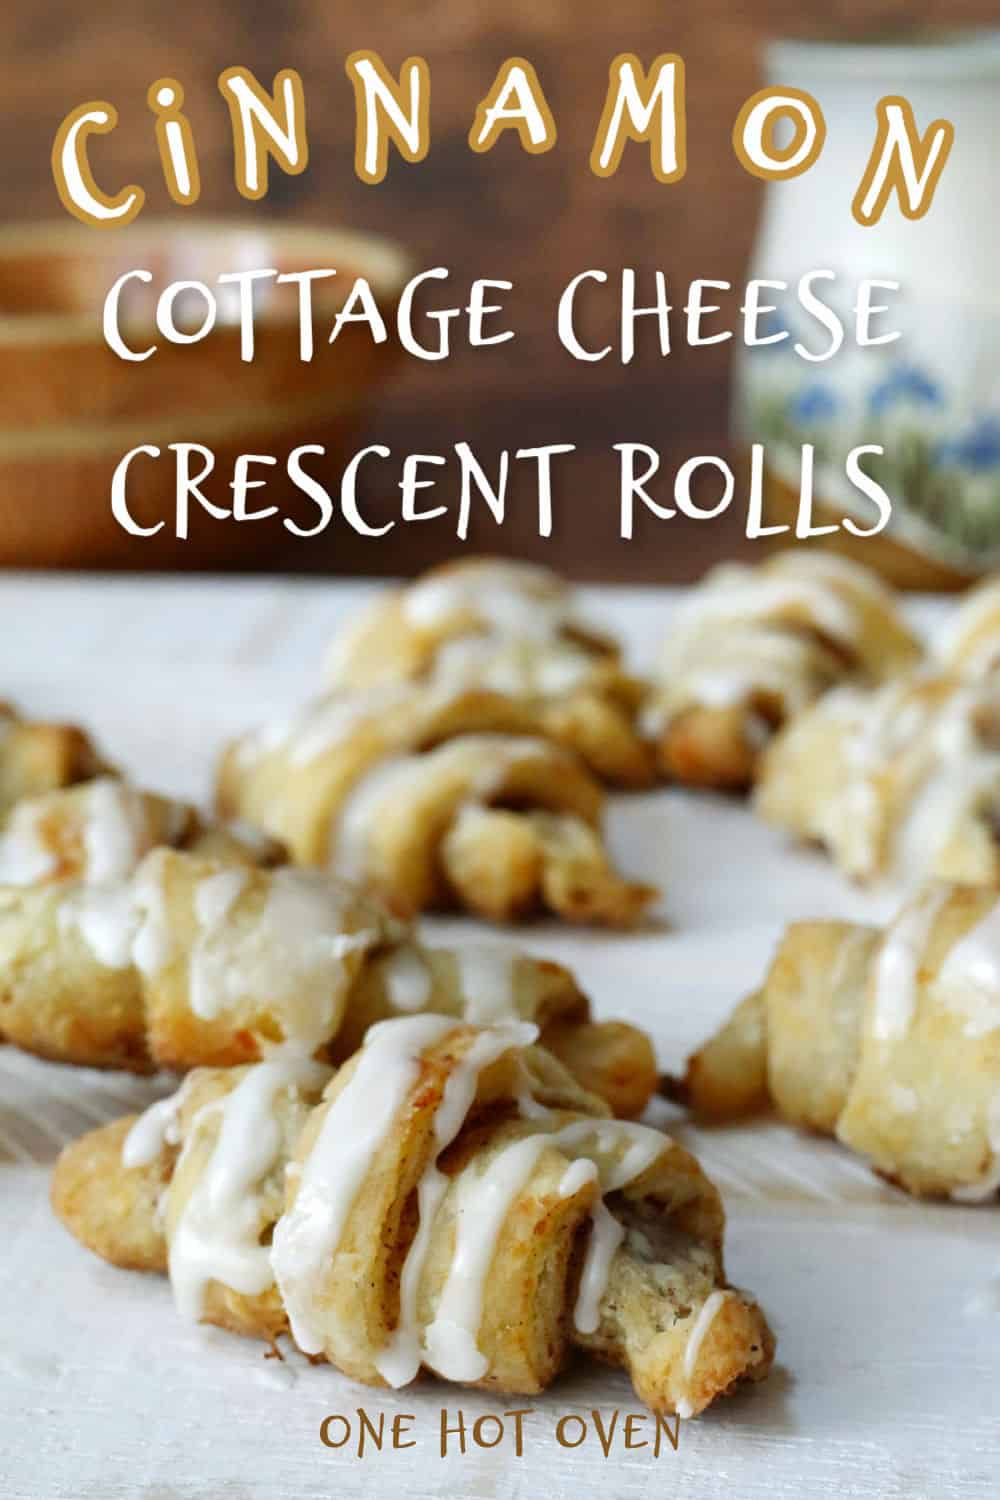 Cinnamon cottage cheese crescent rolls